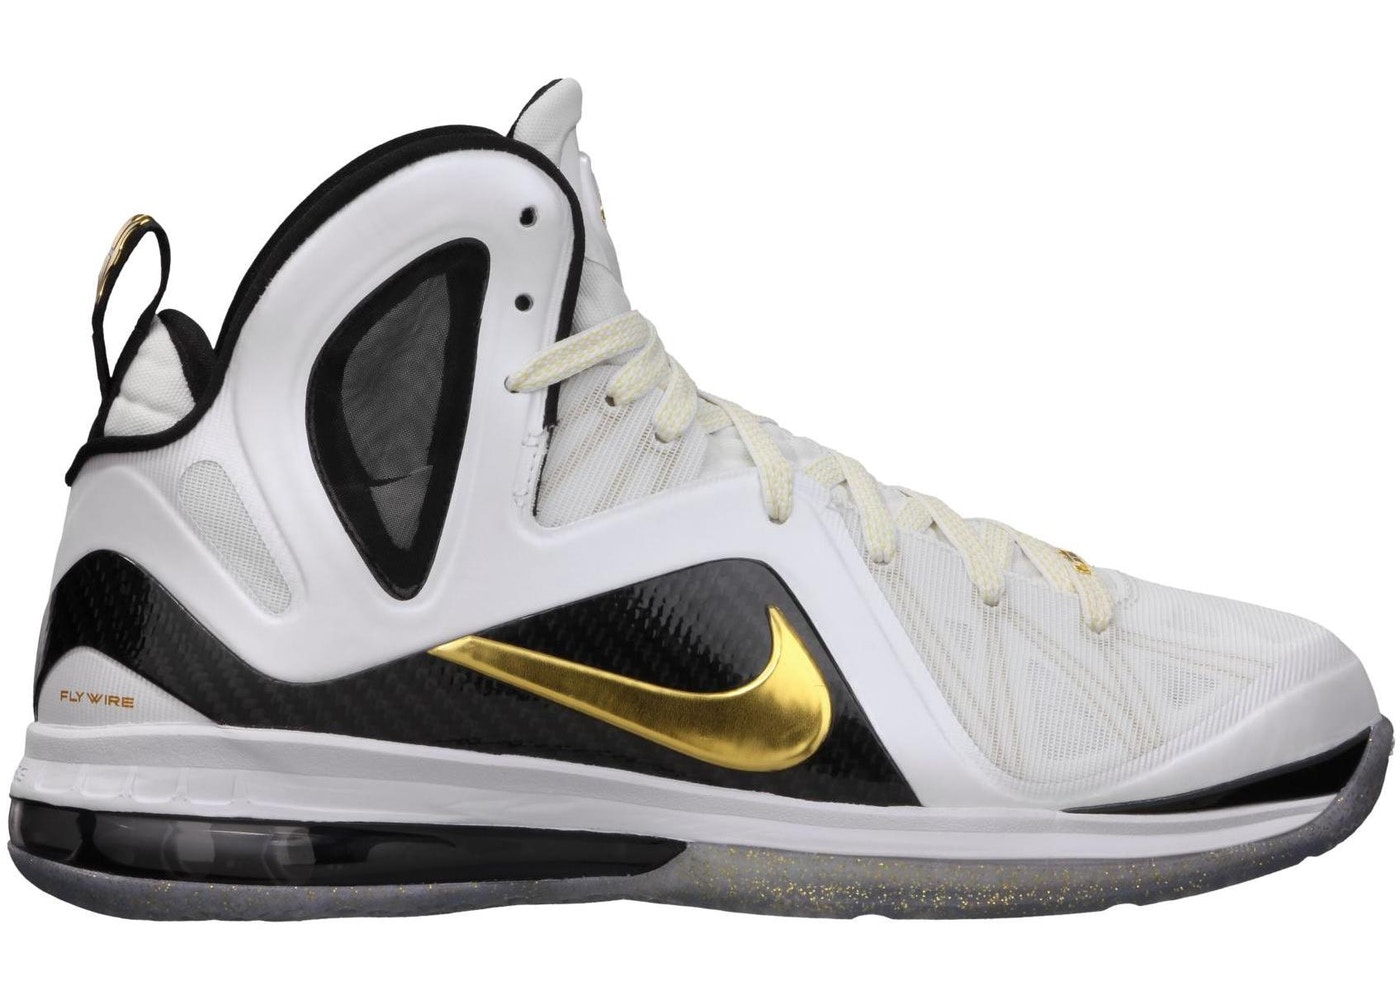 san francisco 434cb a57c2 LeBron 9 PS Elite Home